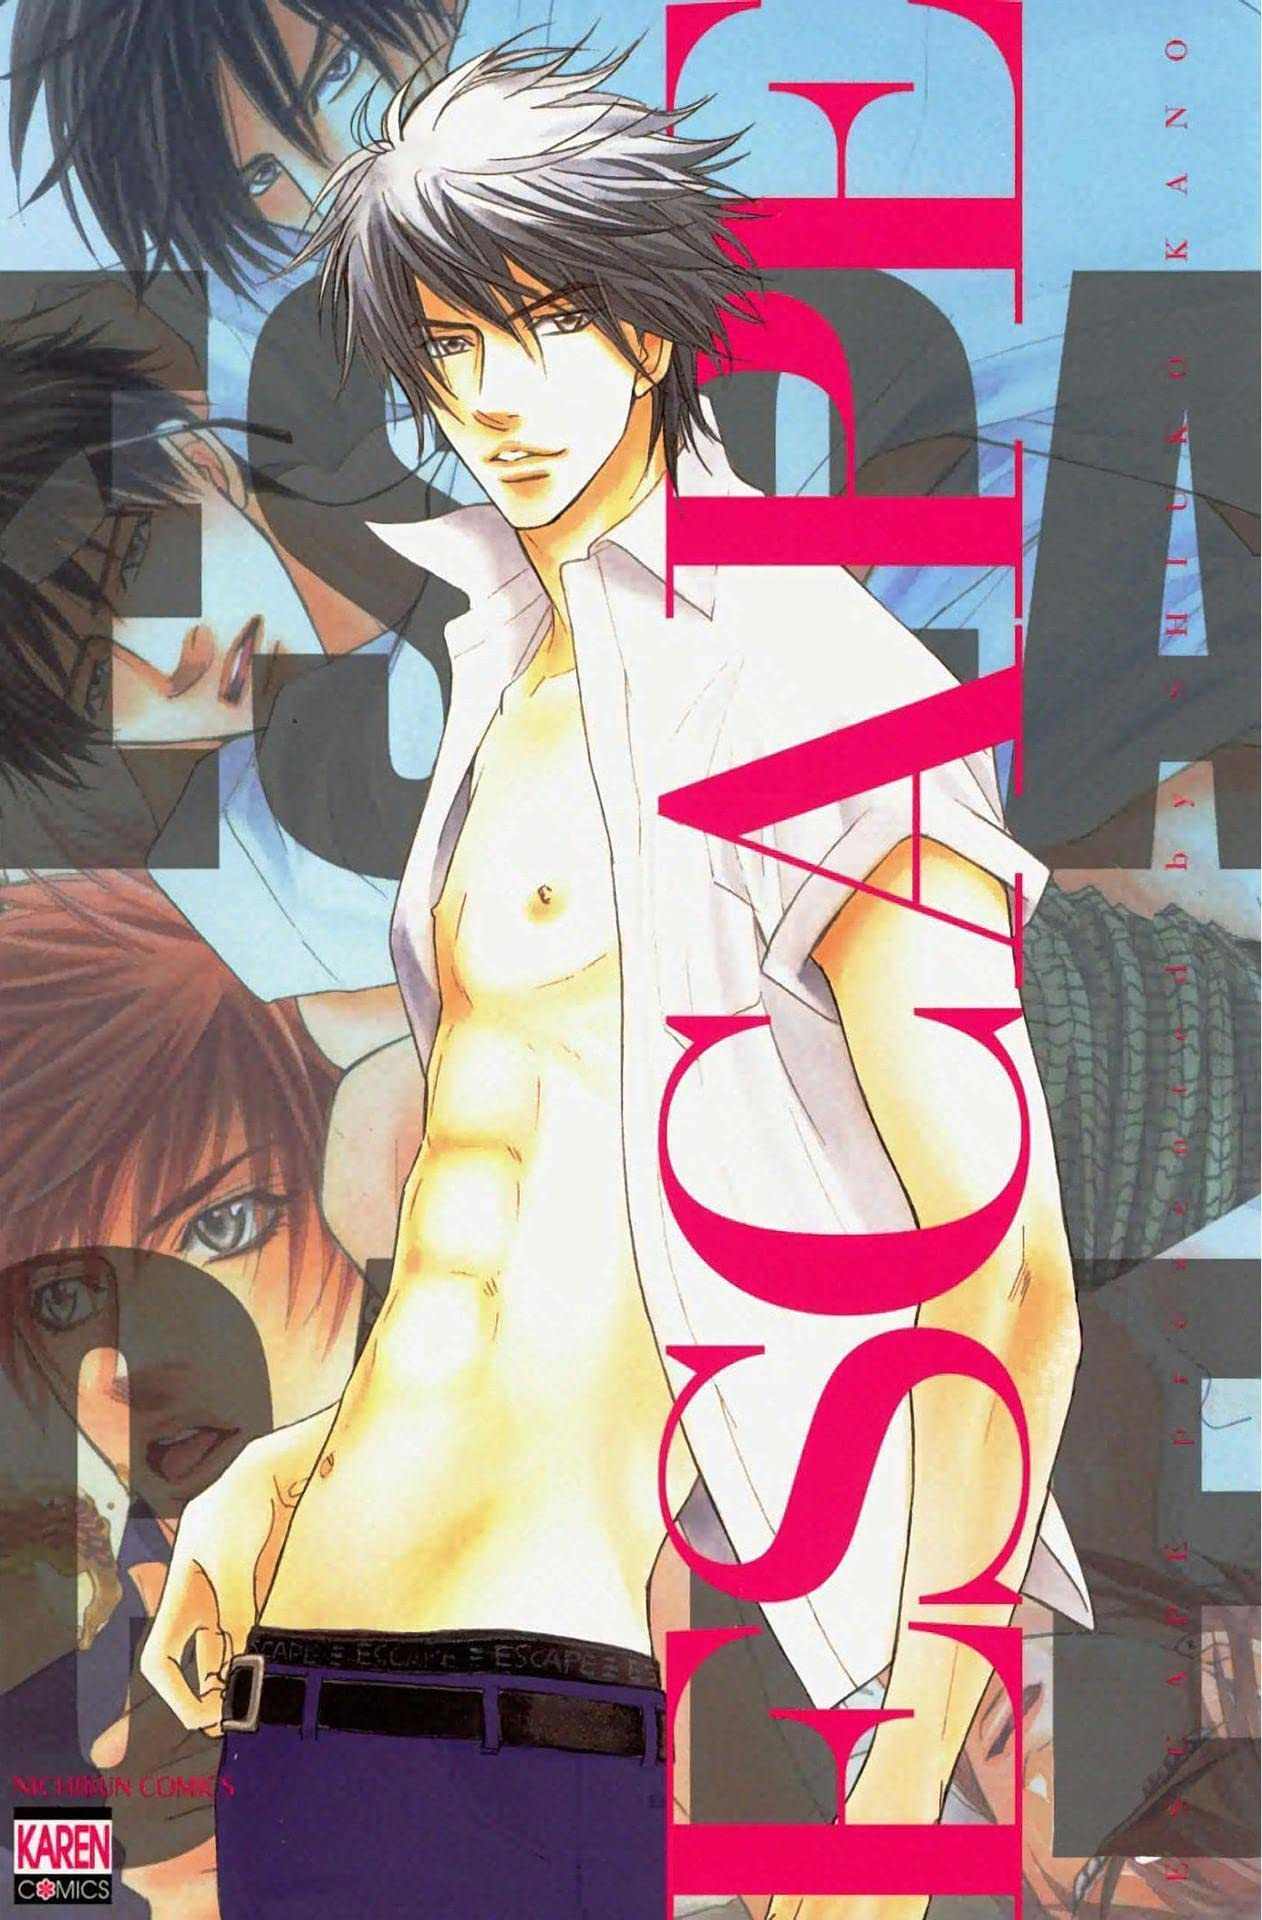 ESCAPE (Yaoi Manga) Vol. 1